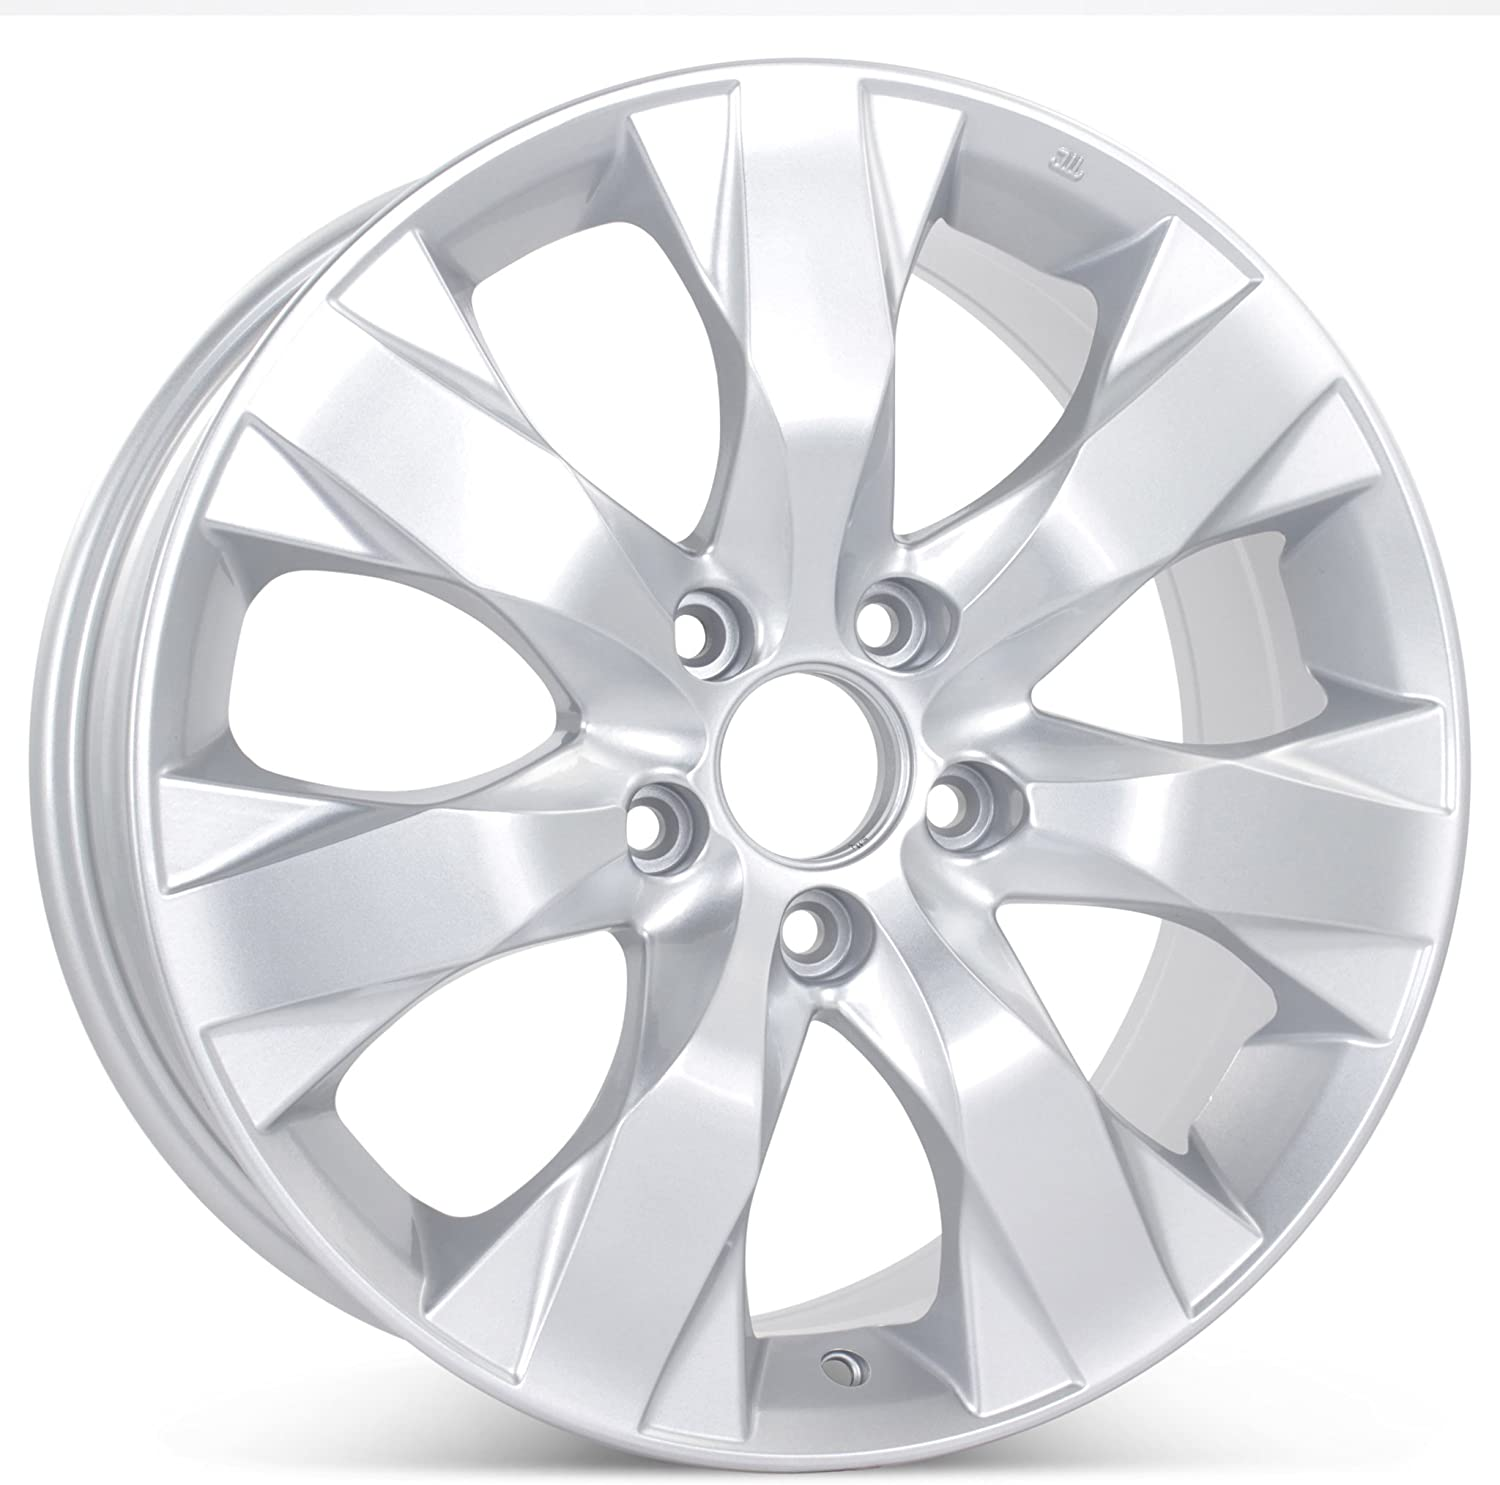 "New 17/"" Replacement Rim for Honda Accord 2018 2019 2020 Wheel Silver"